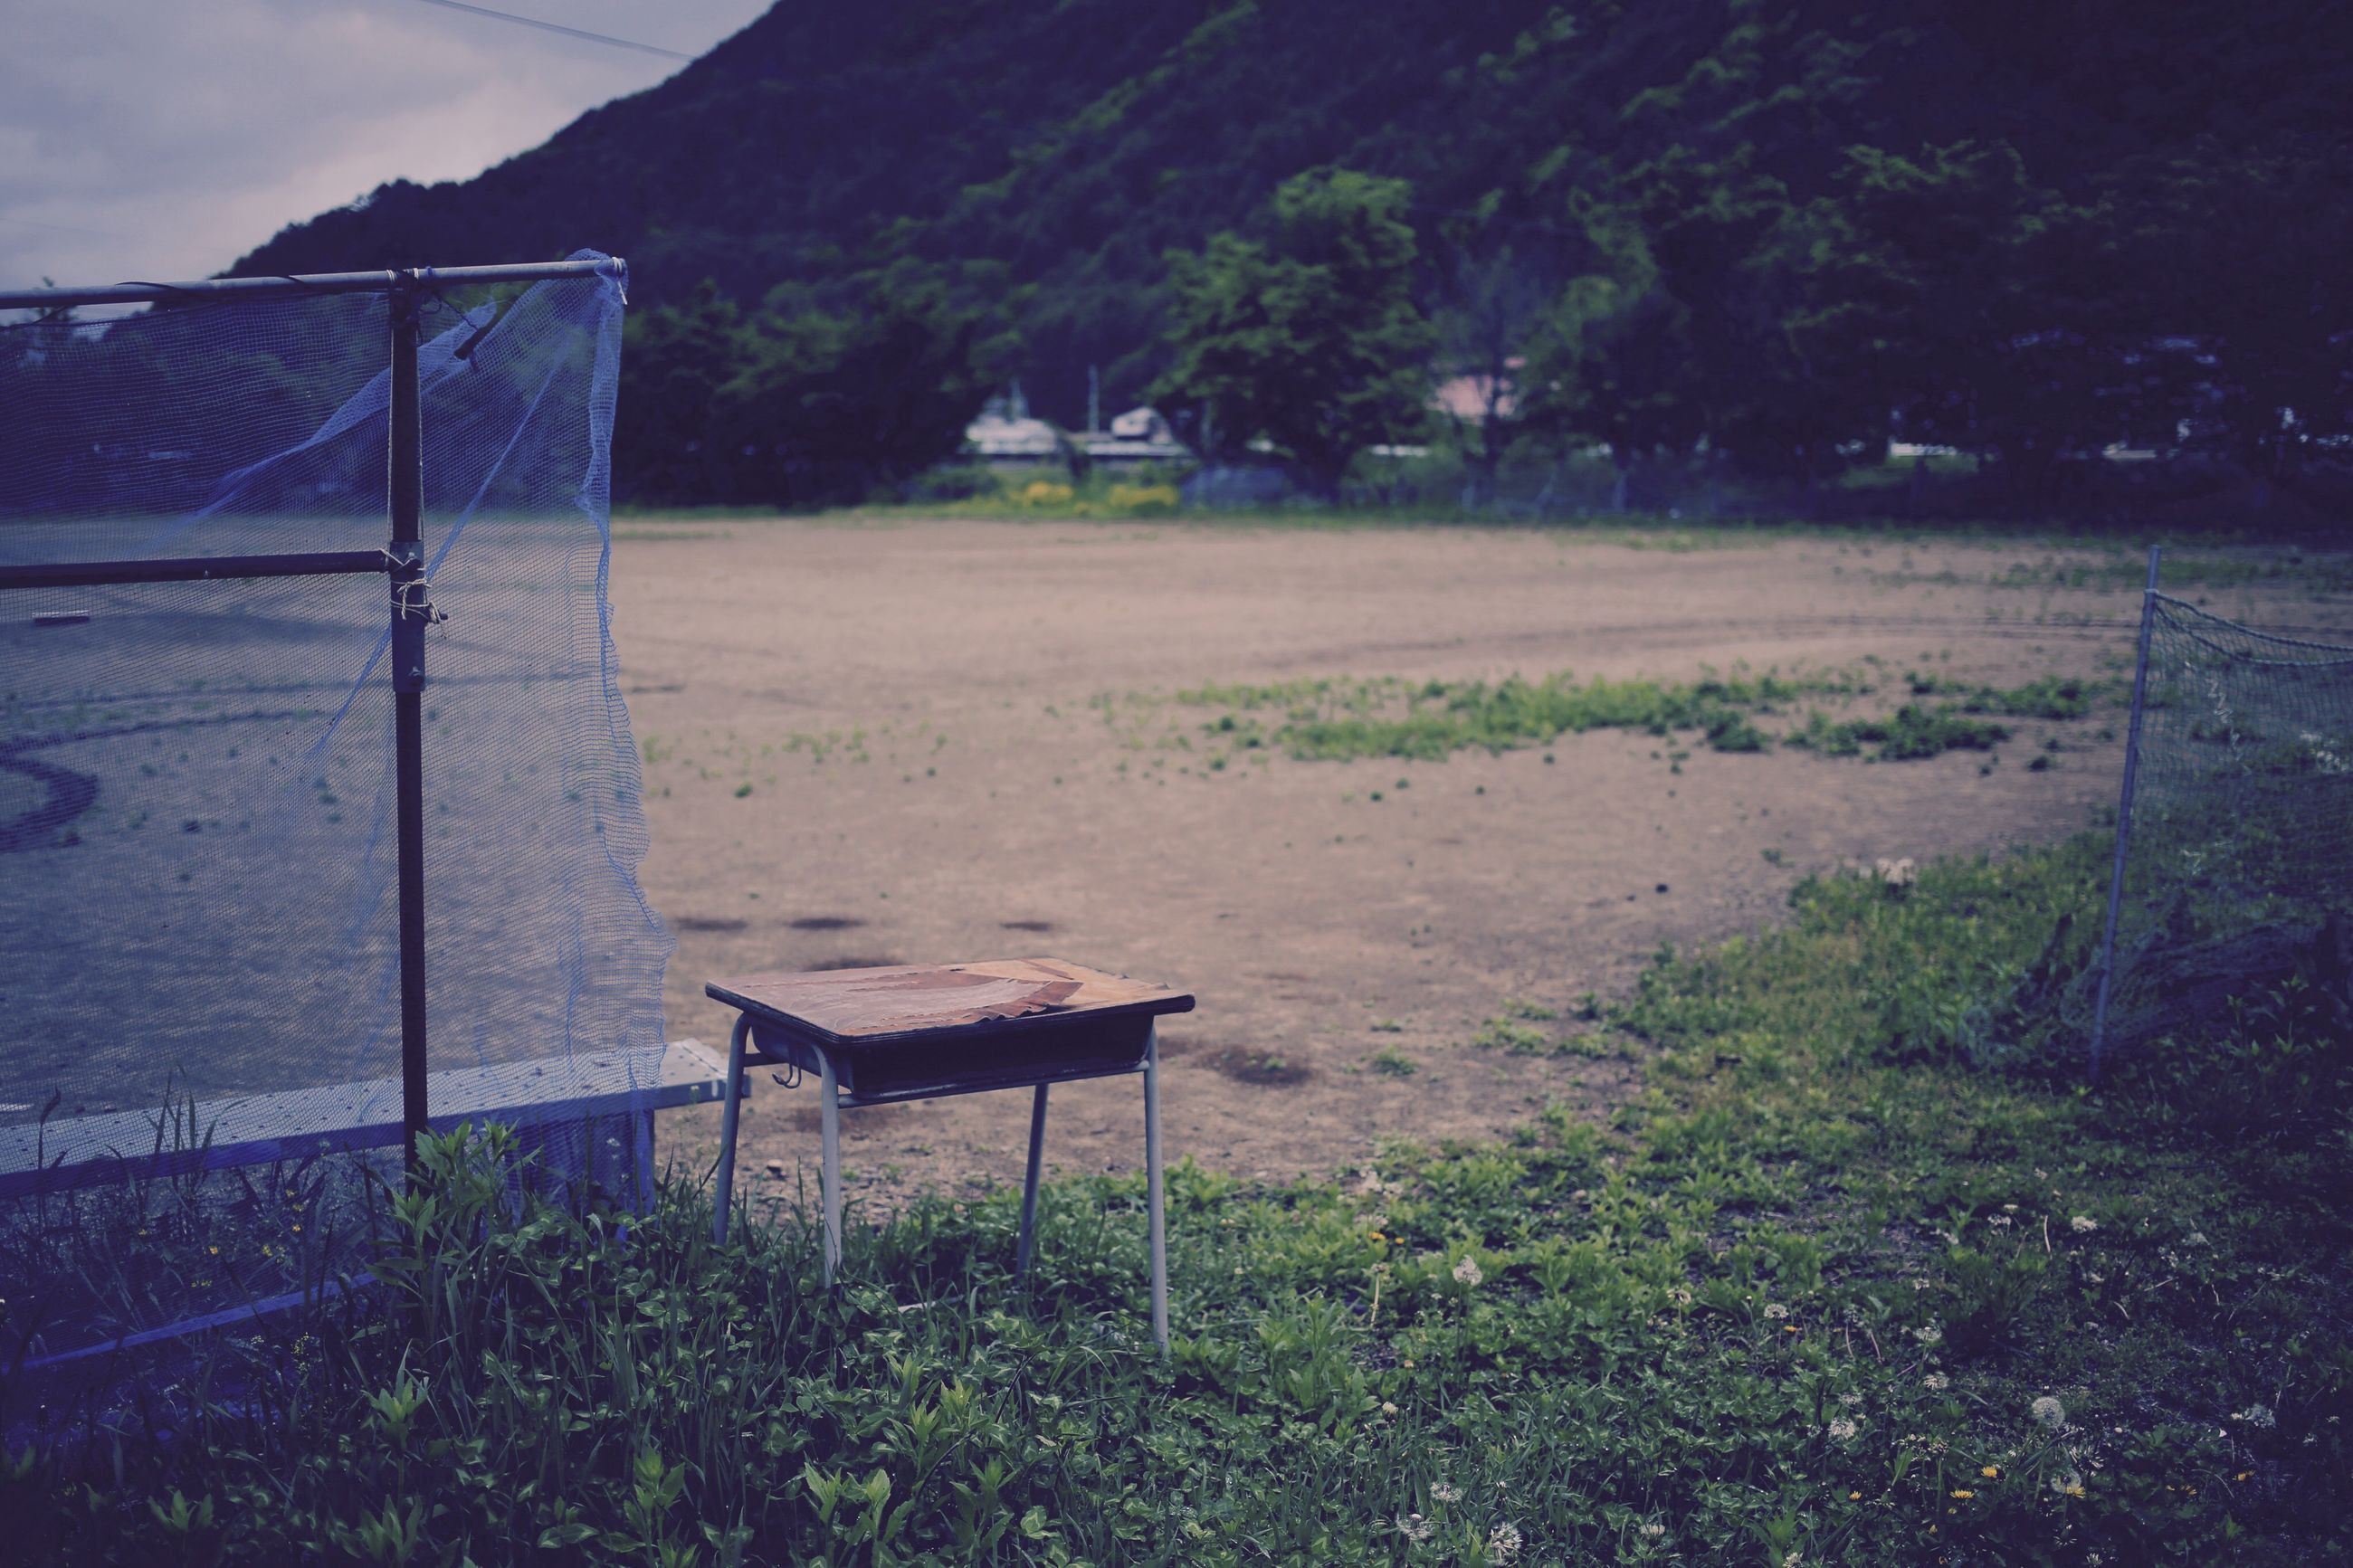 empty, field, chair, grass, absence, soccer, no people, outdoors, day, soccer field, sport, nature, playing field, tree, goal post, sky